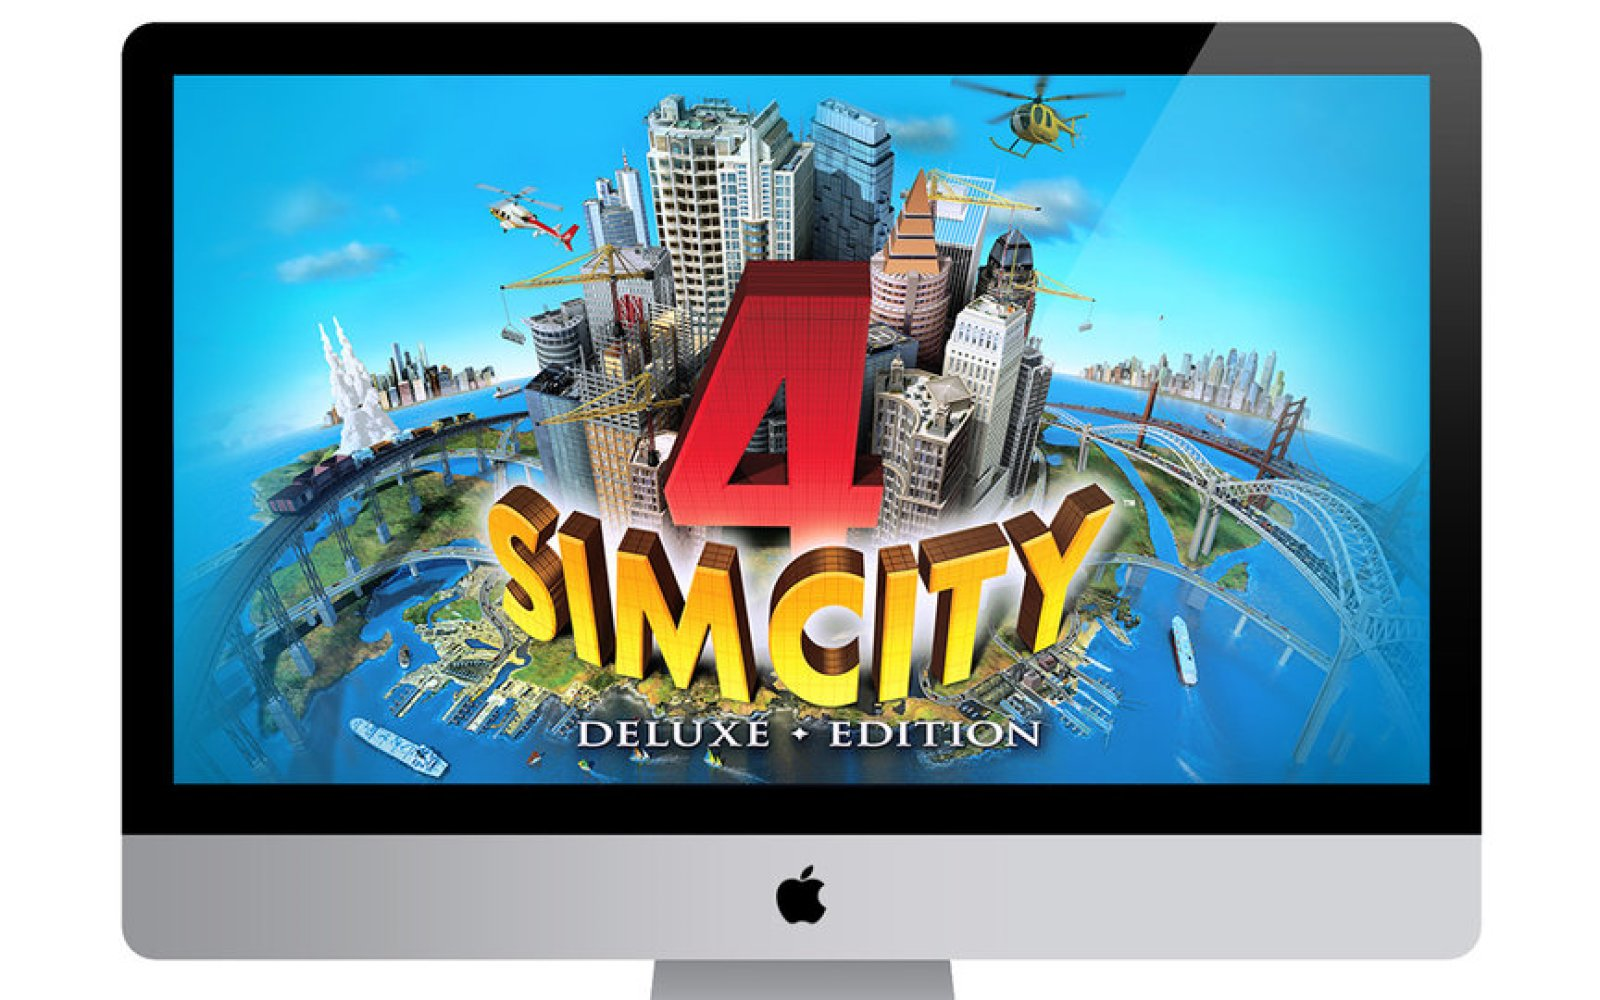 SimCity 4 Deluxe Edition incorporates Rush Hour expansion pack, exclusively in Mac App Store